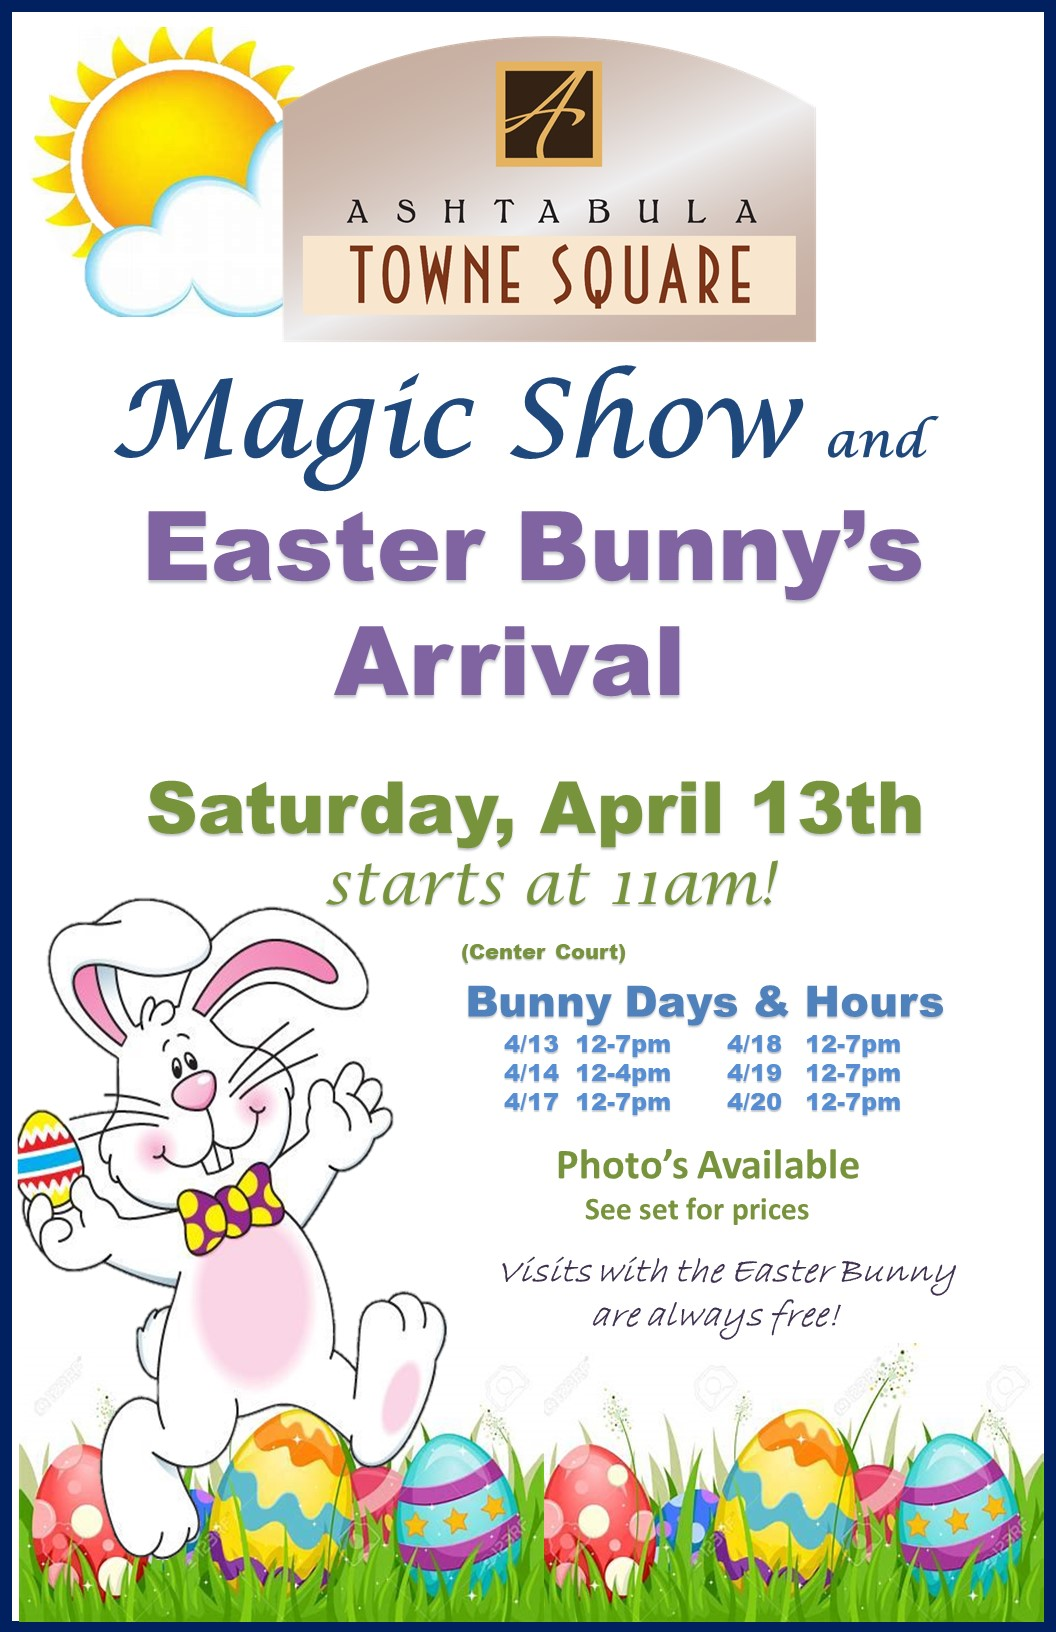 2019 Magic Show Easter Bunny ARRIVAL POSTER.jpg